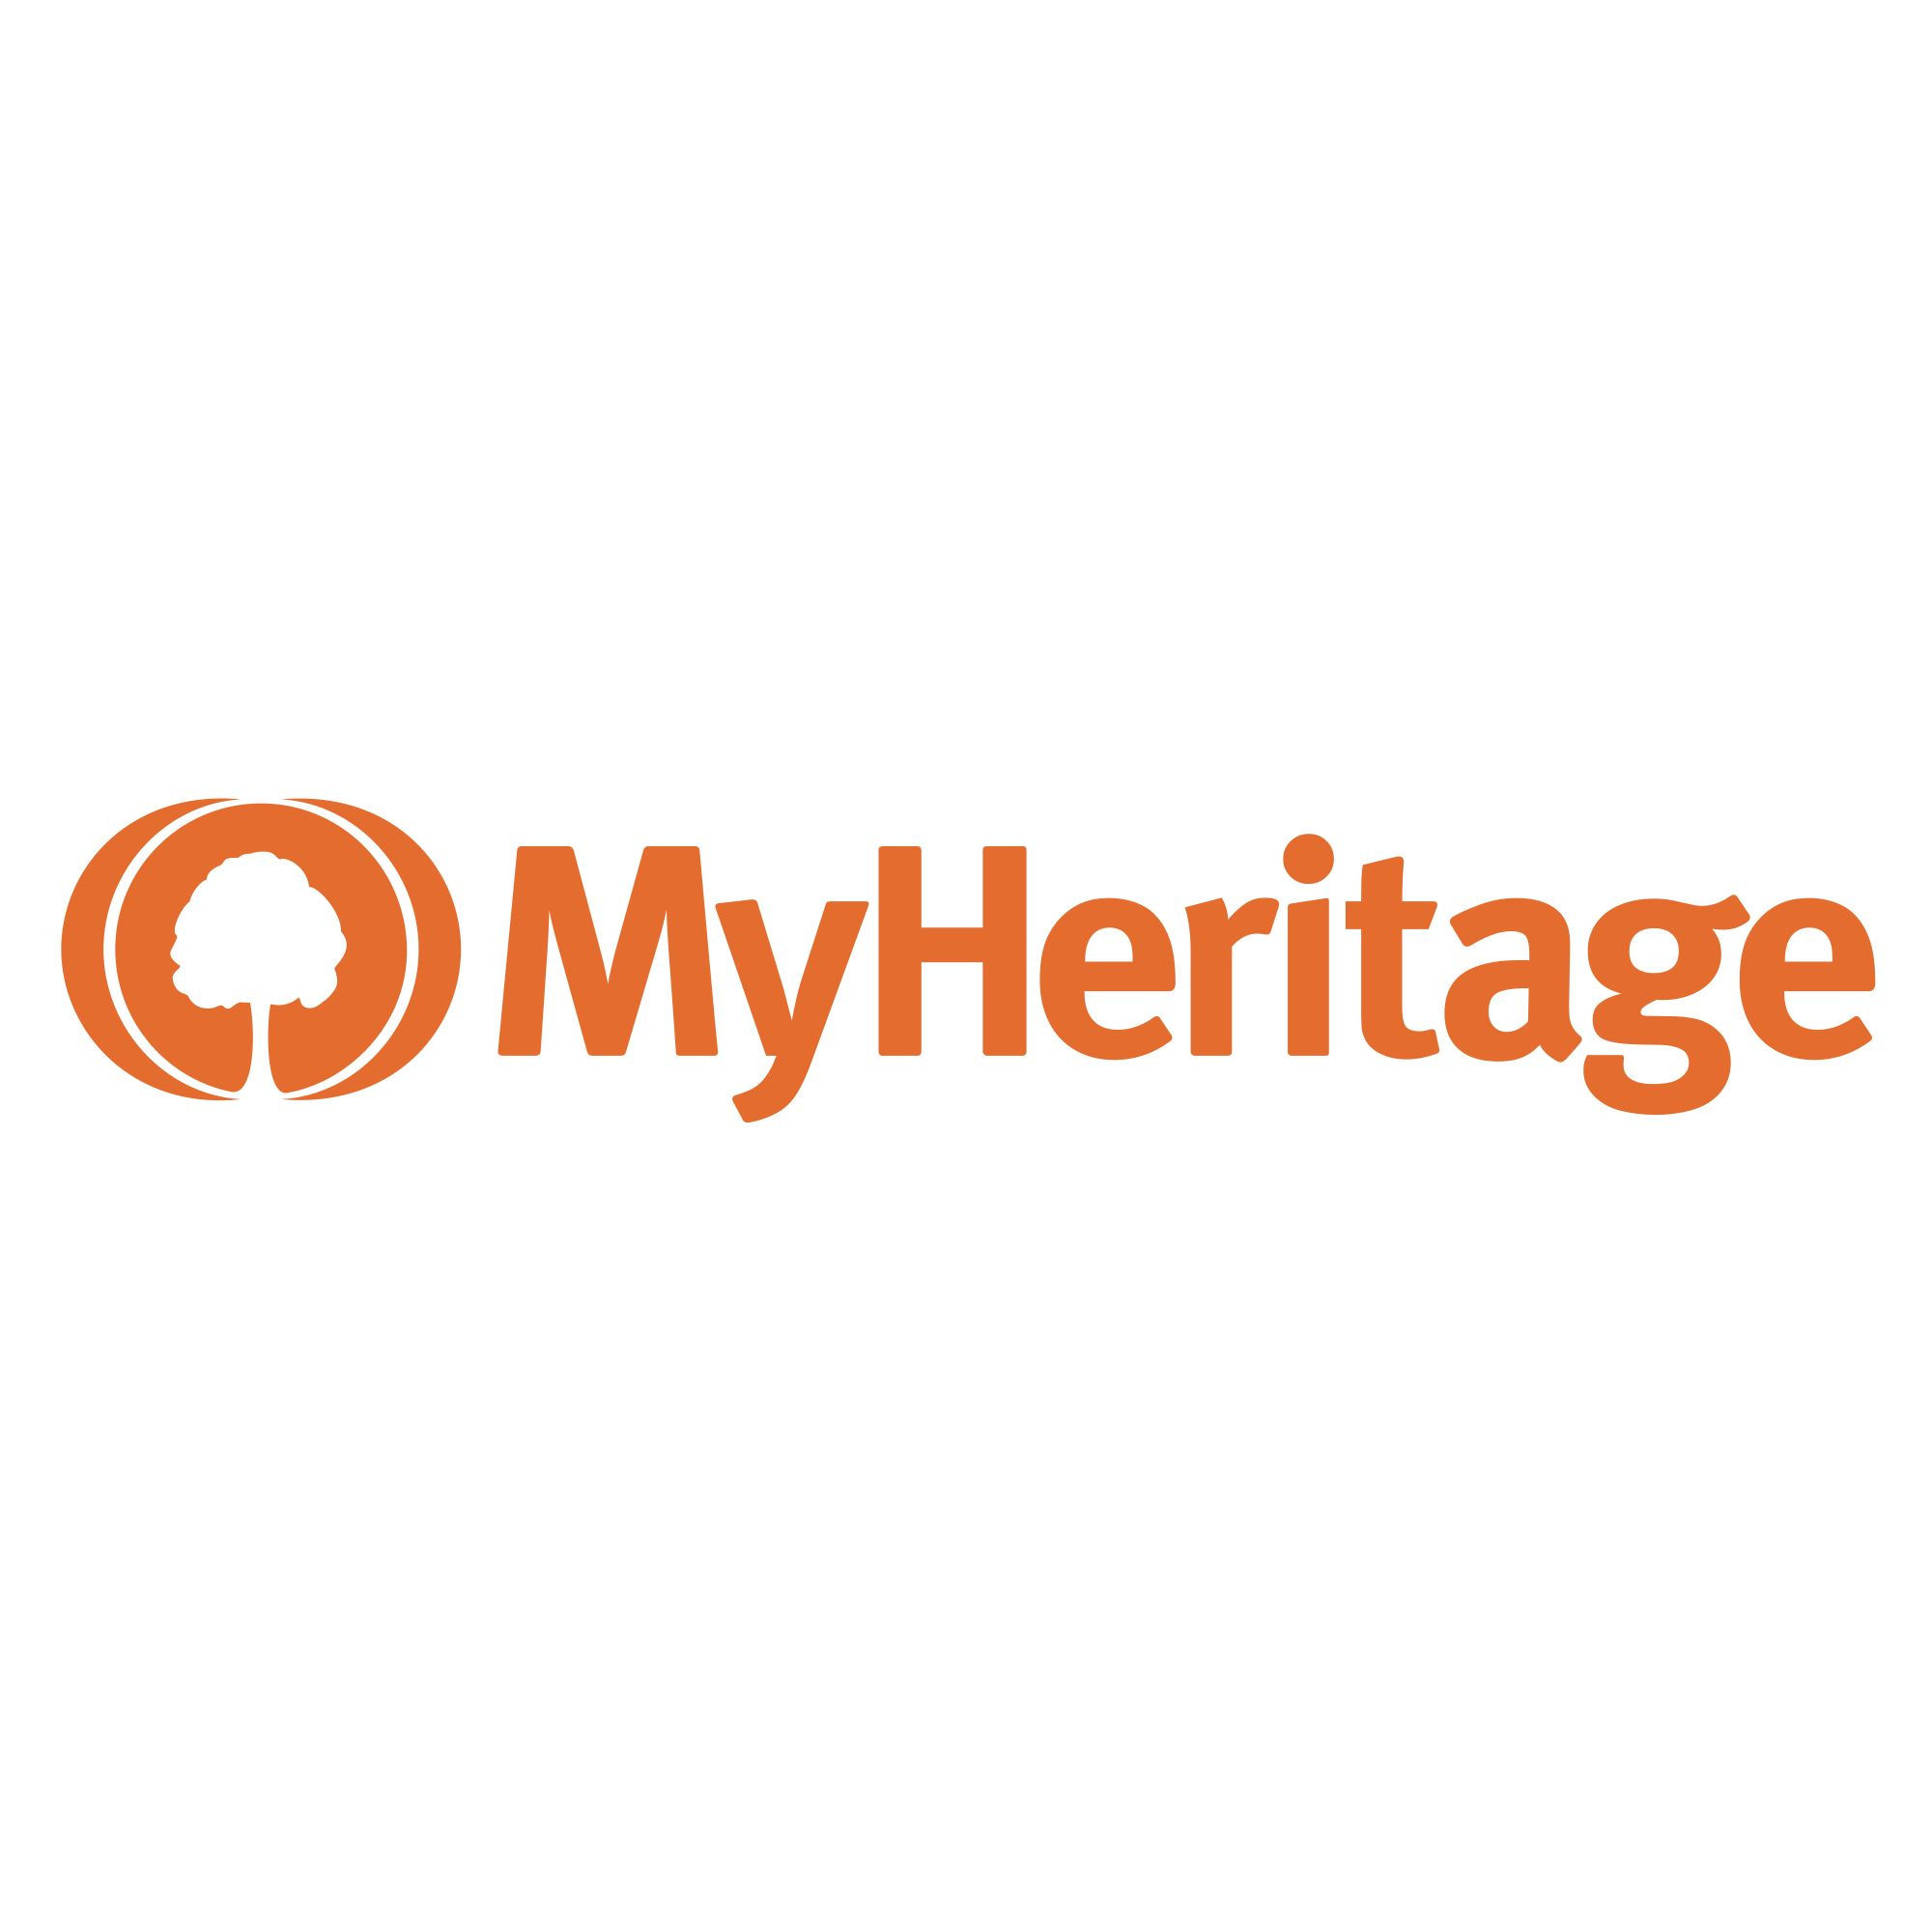 How to Make the Most of Your Free MyHeritage LDS Account